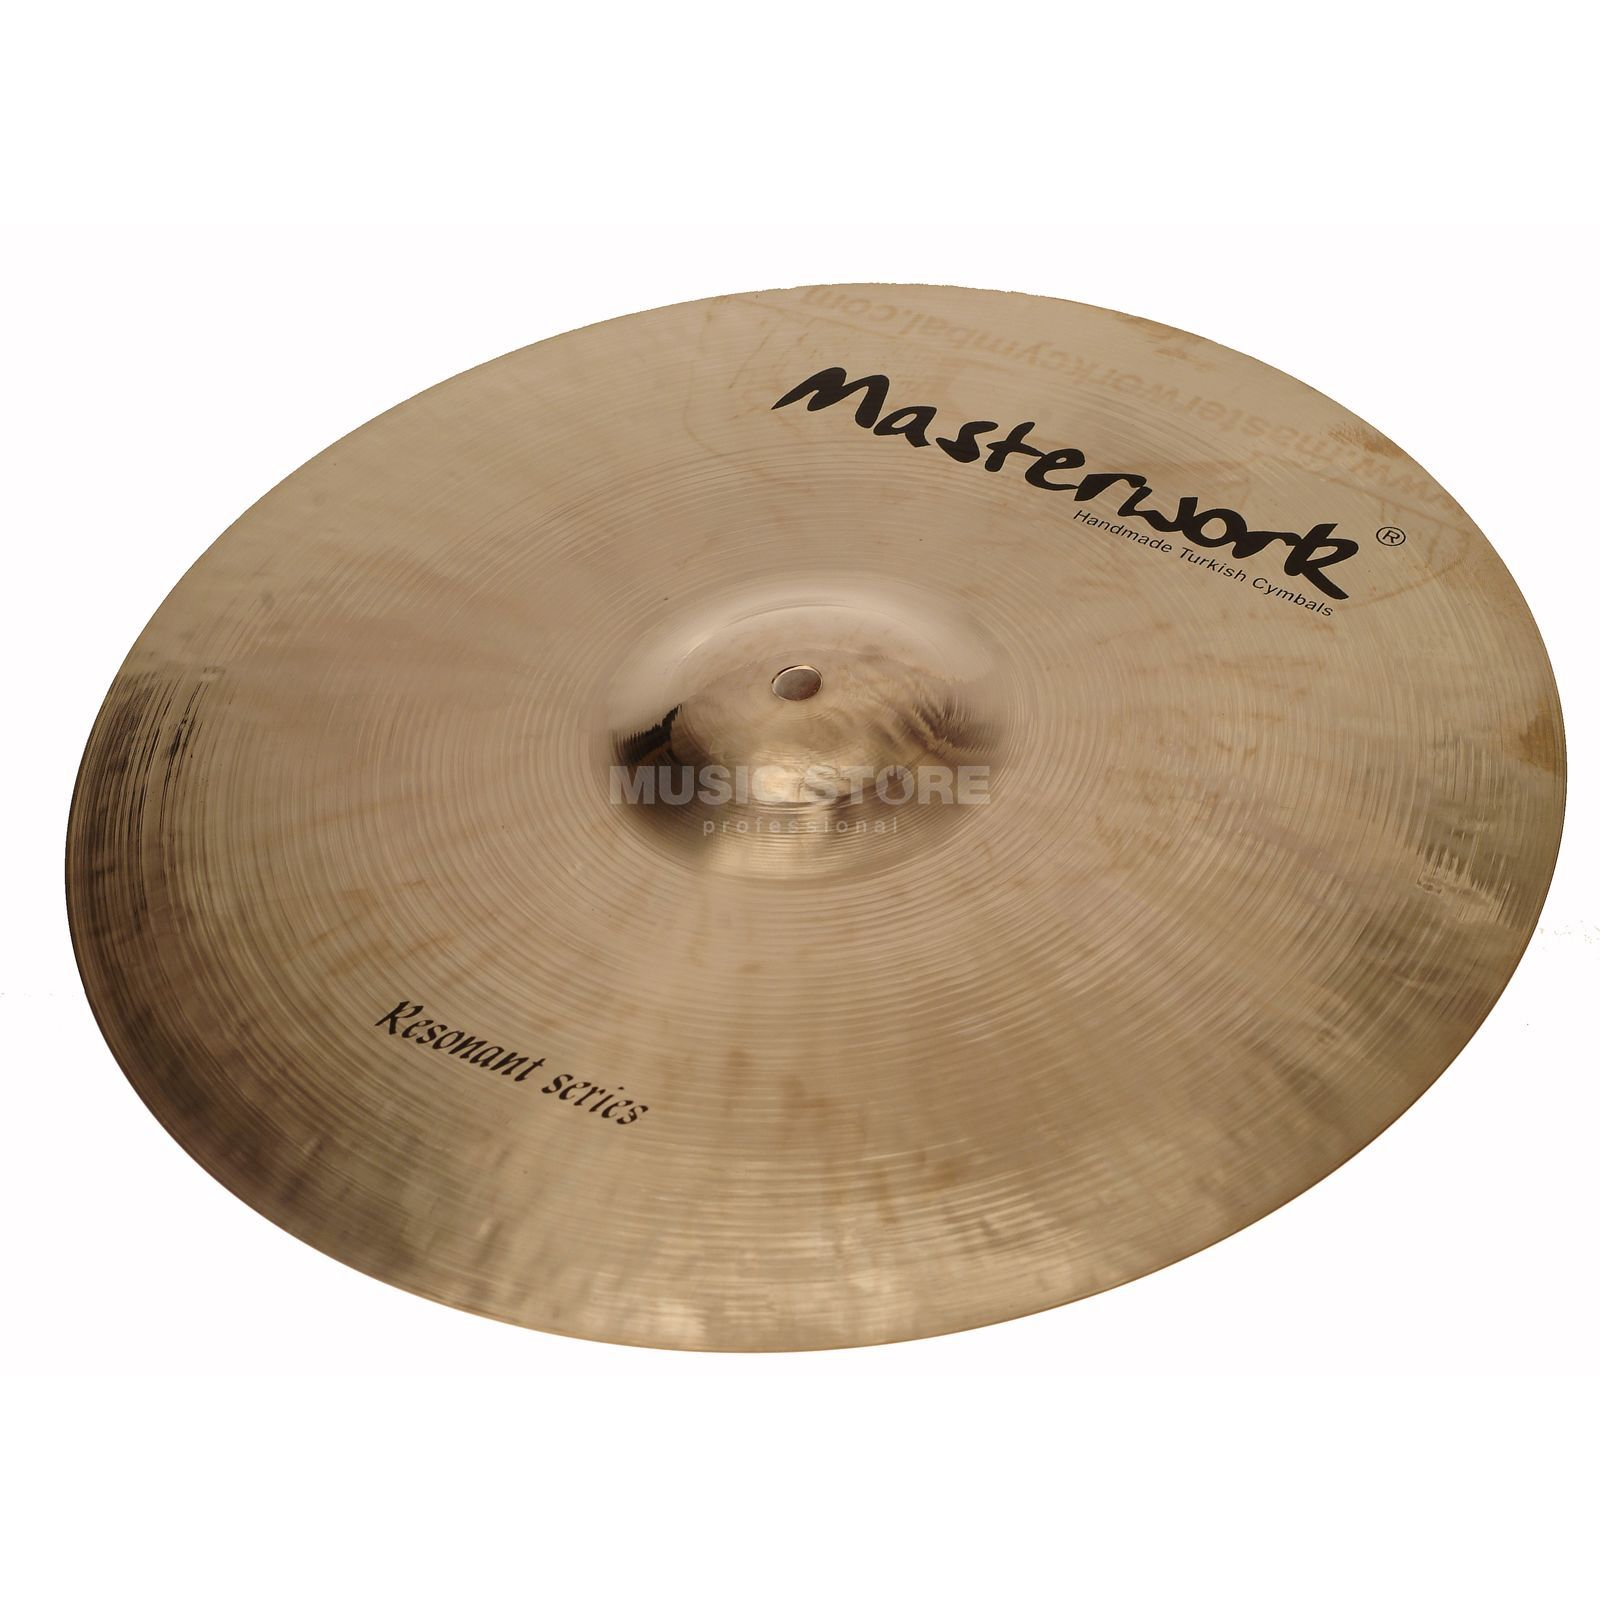 "Masterwork Resonant Ride 21"" Brilliant Finish Product Image"